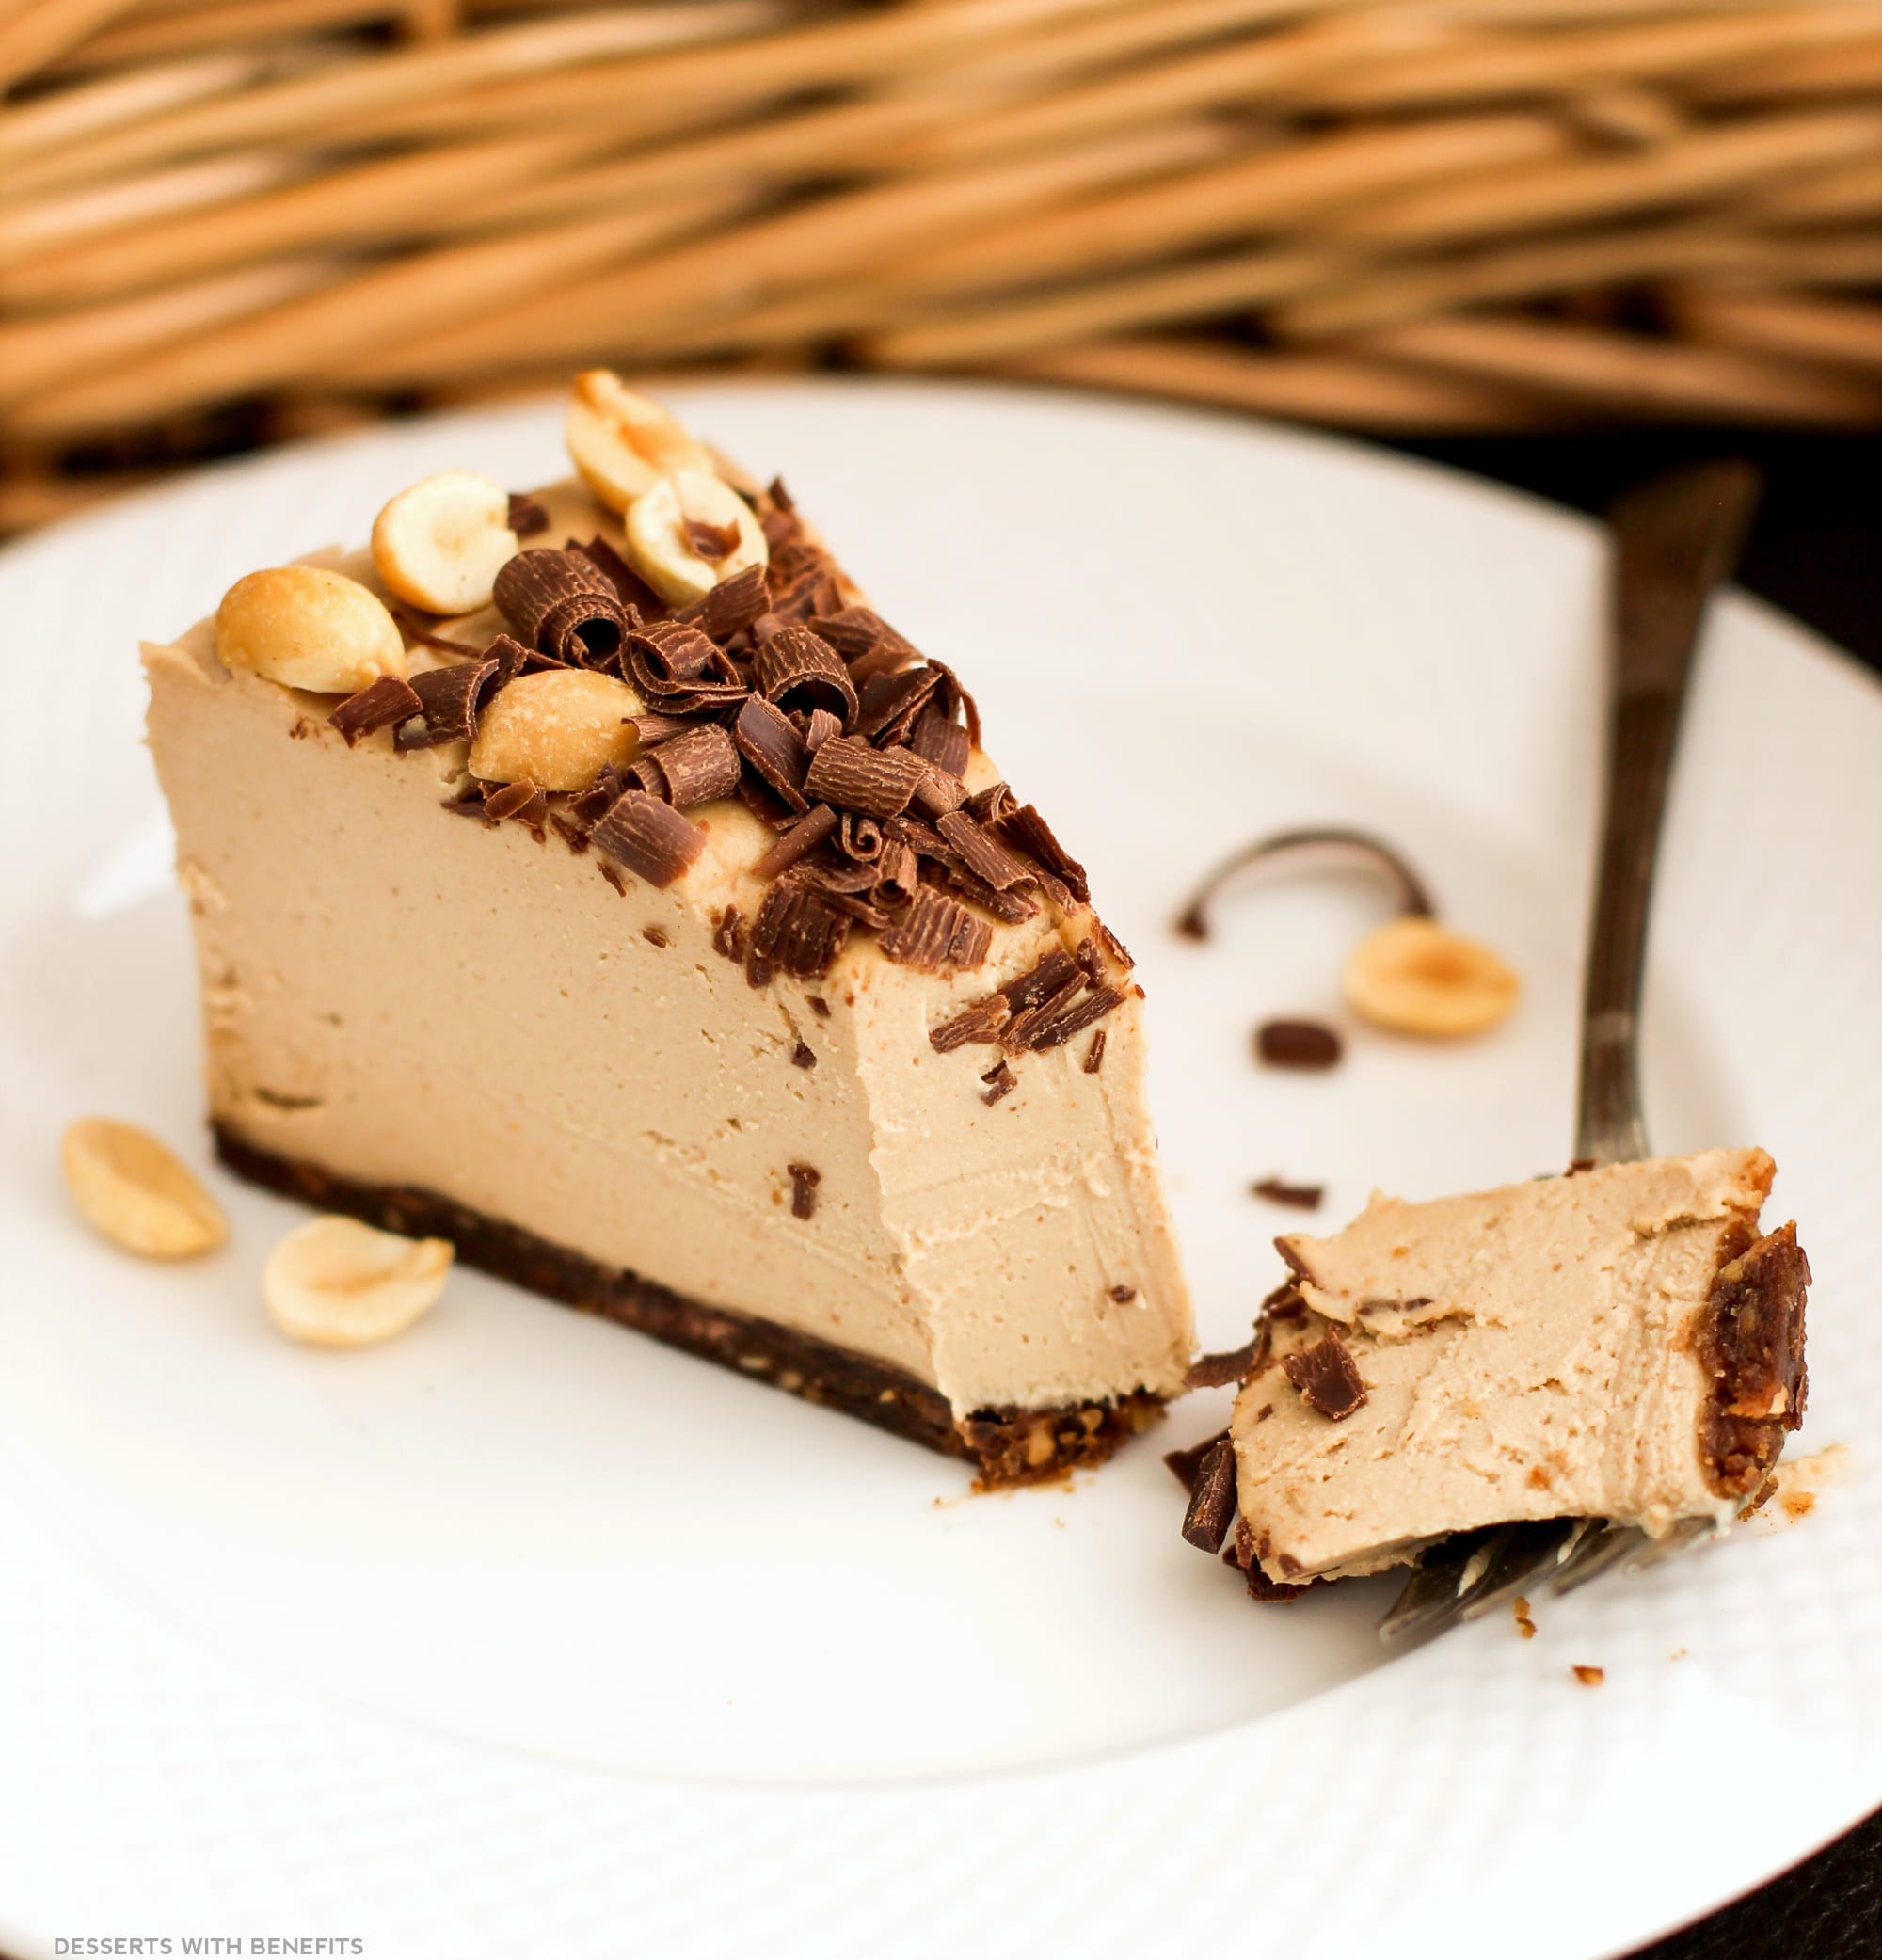 Healthy Dairy Free Desserts  Healthy Chocolate Peanut Butter Raw Cheesecake